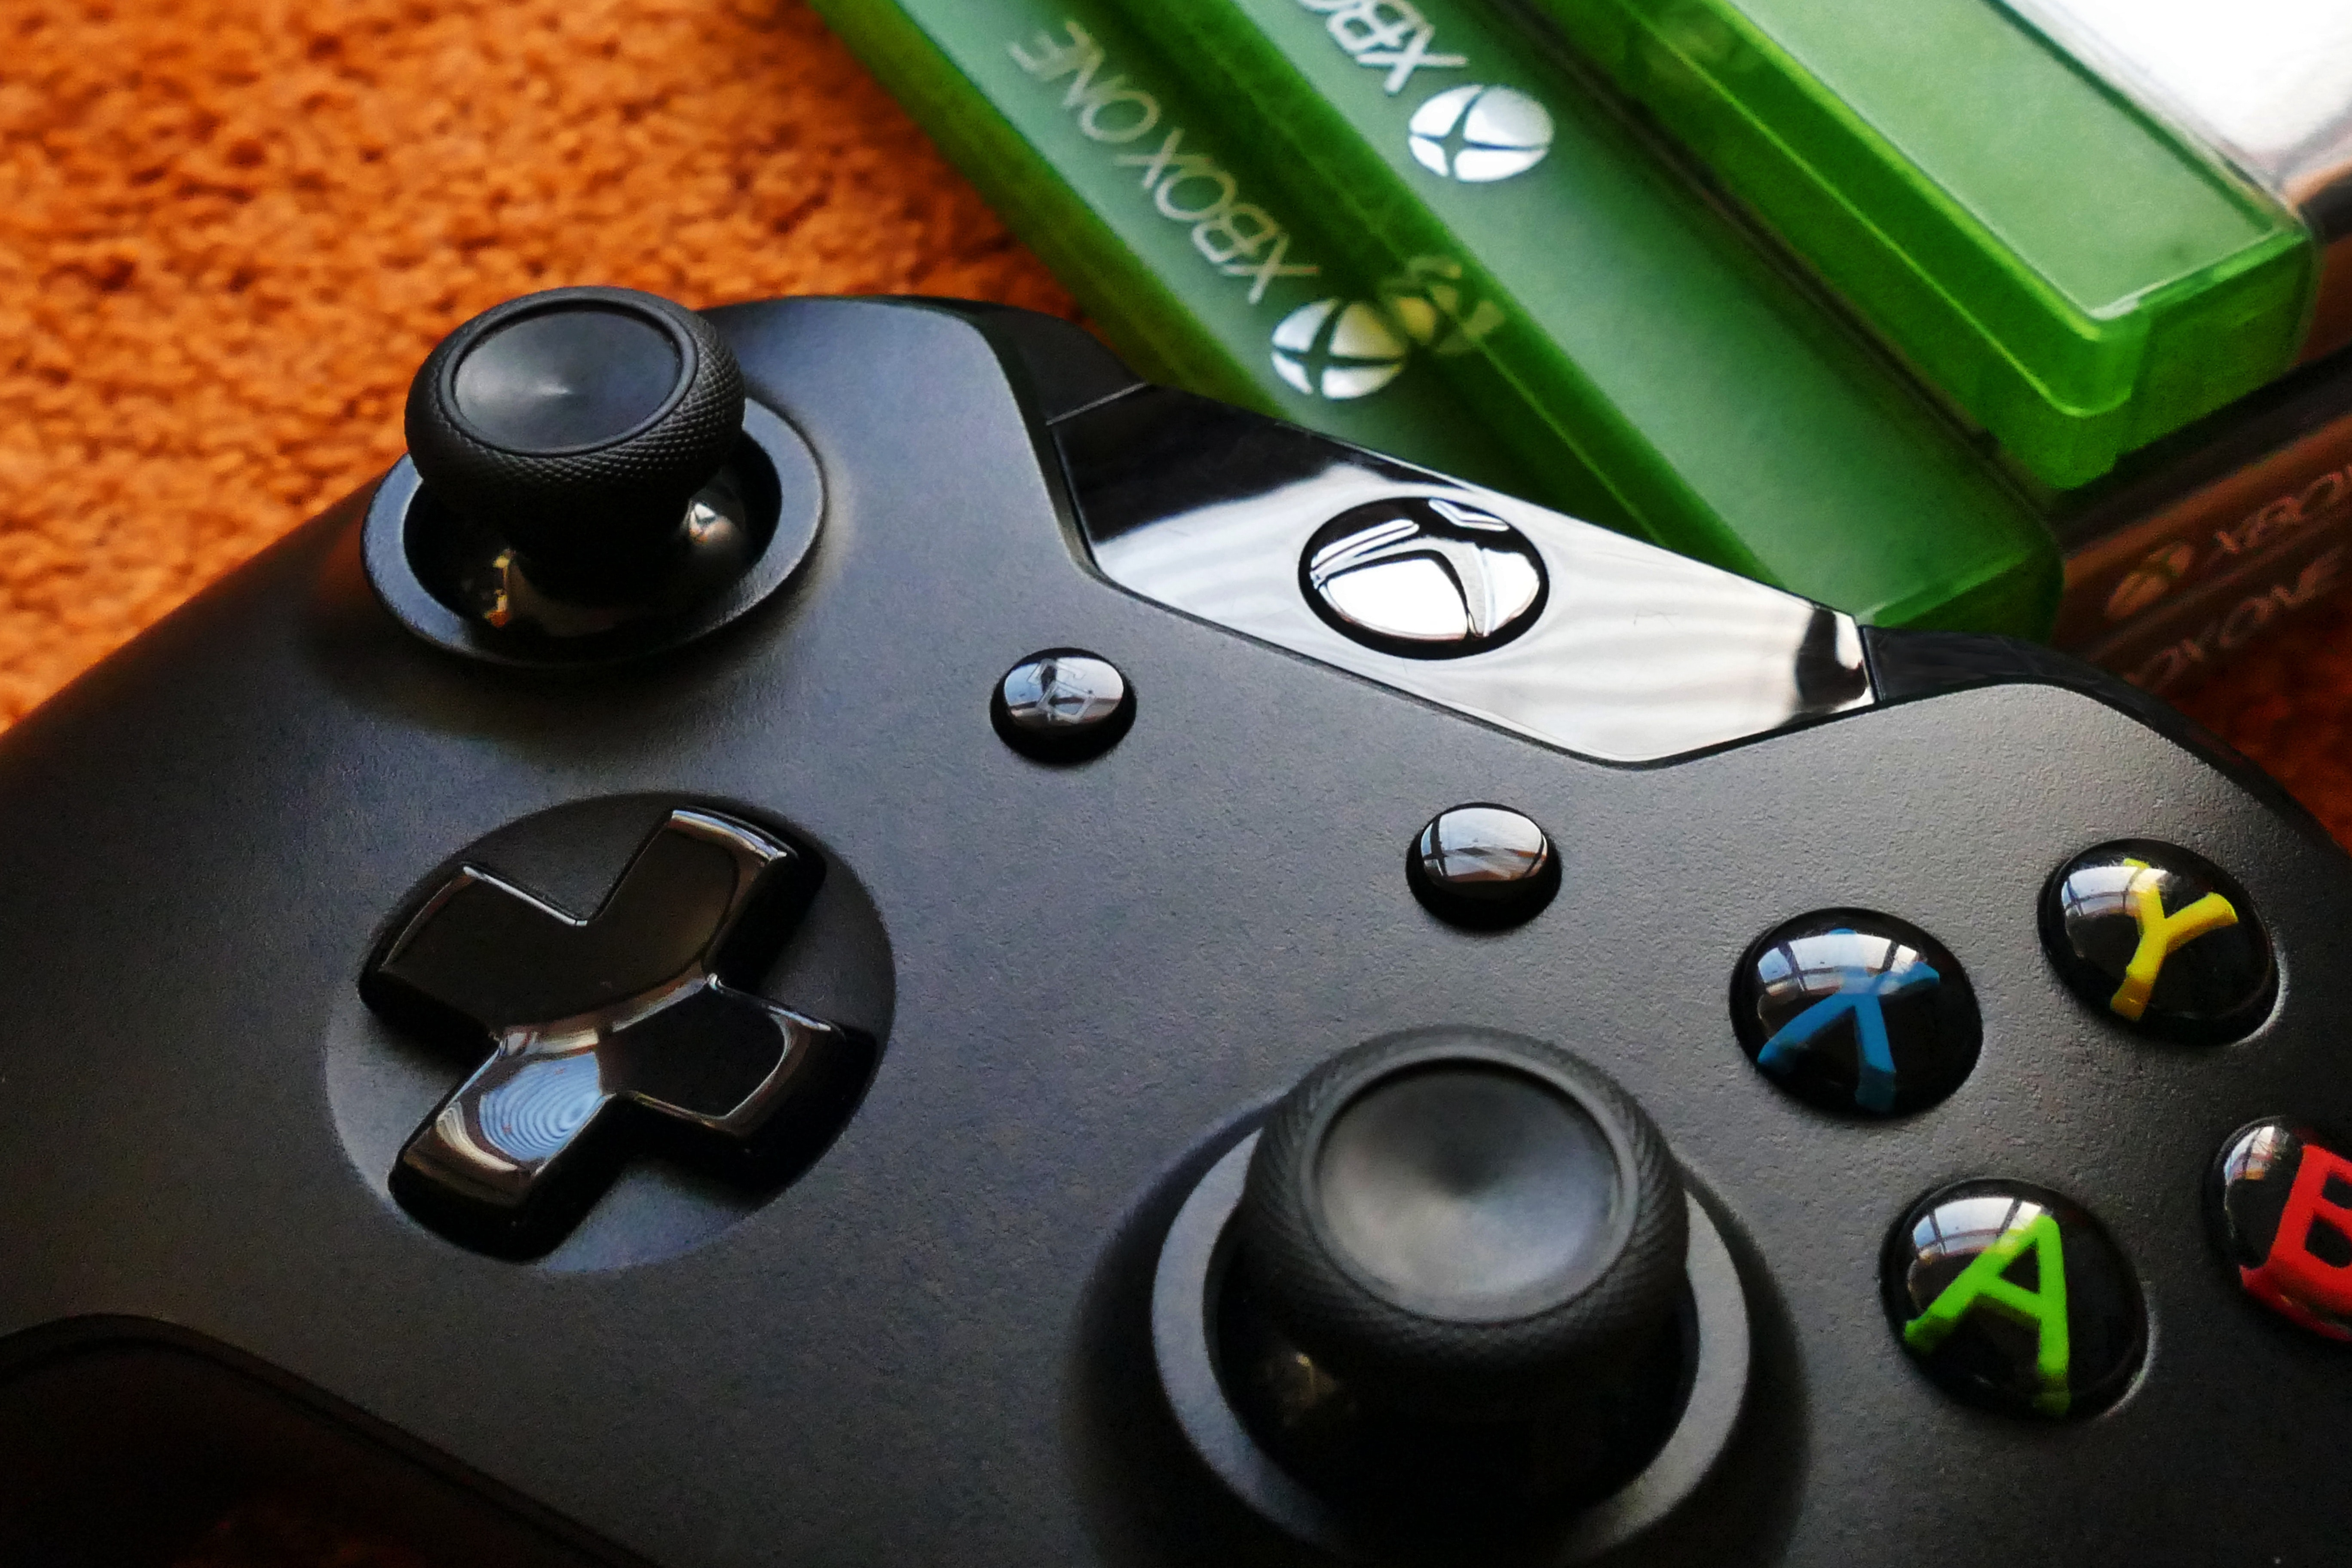 Xbox controller video game obsession